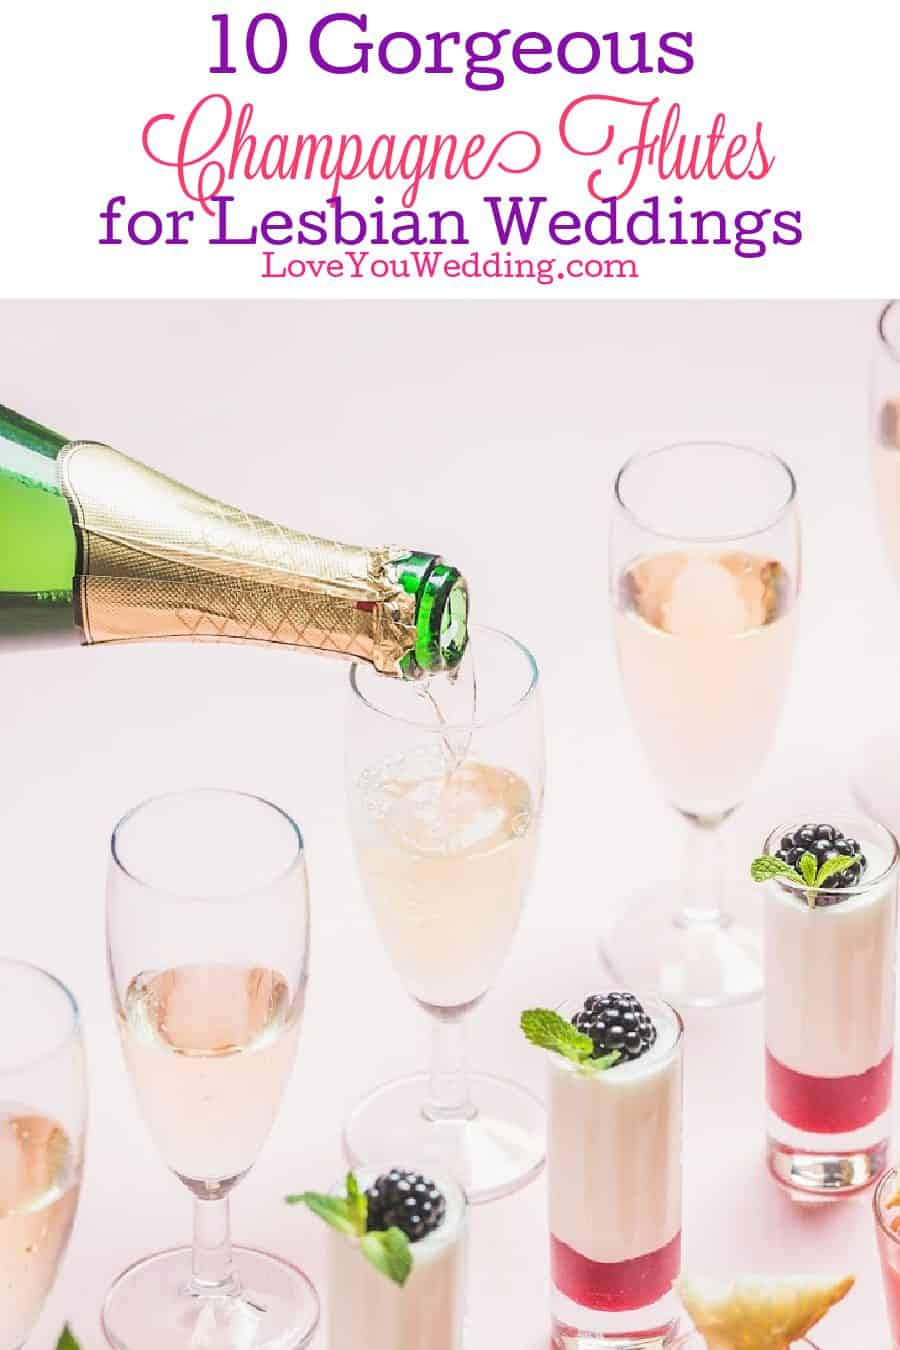 Looking for some gorgeous lesbian wedding champagne flutes? Check out 10 that we think are just perfect for toasting to your big moment!